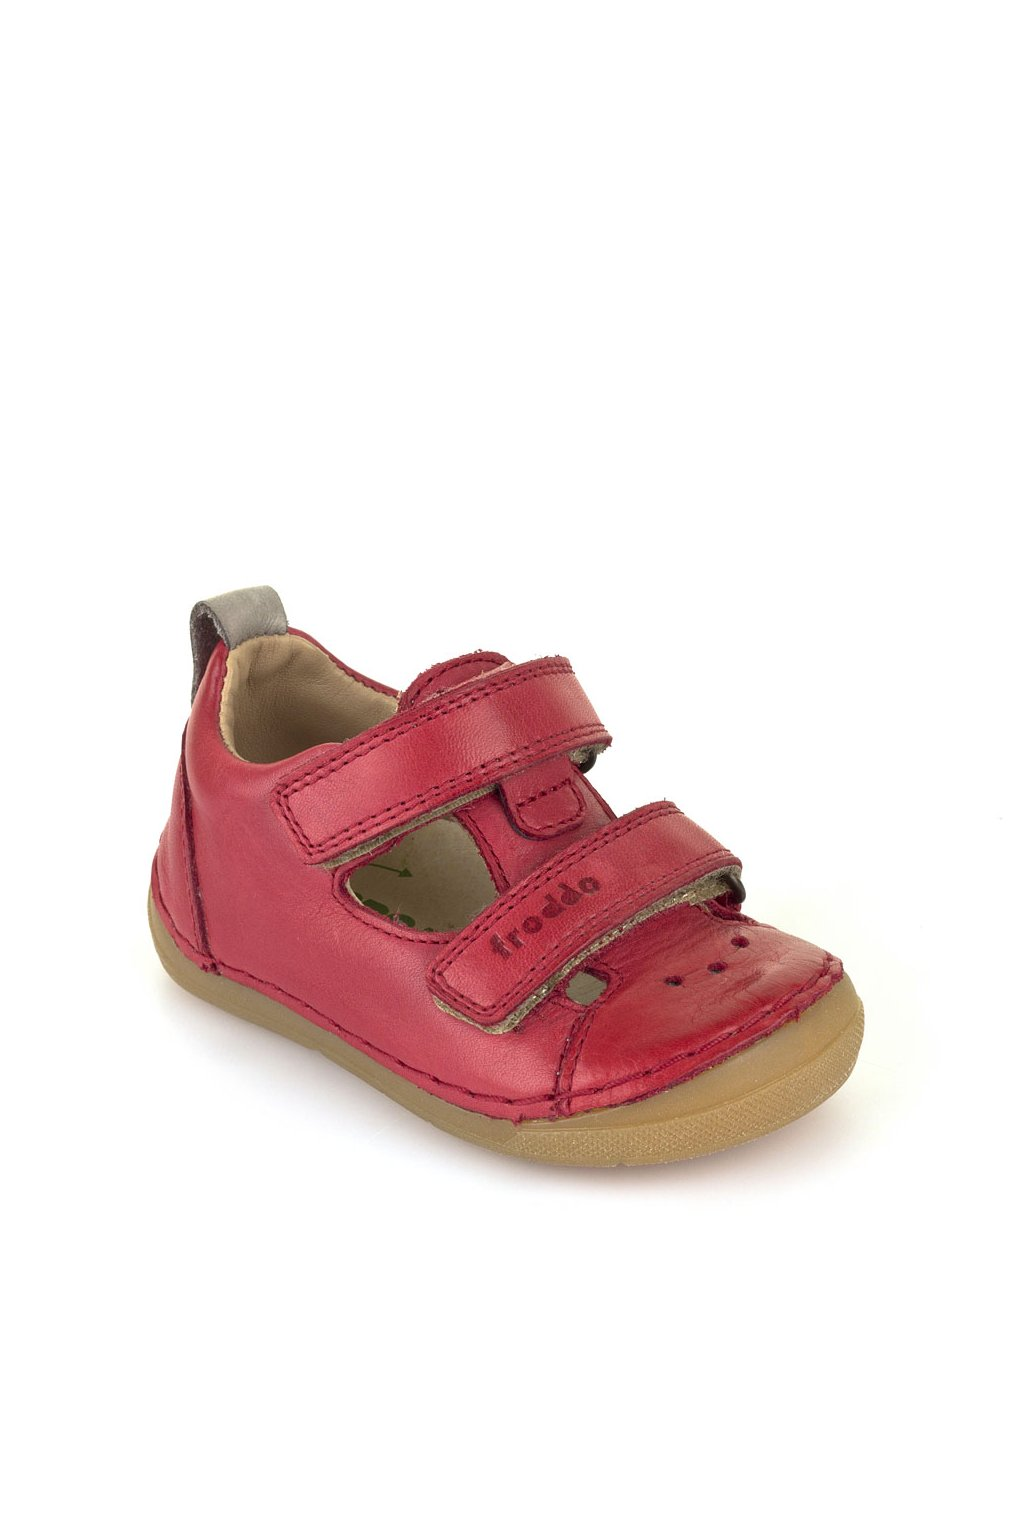 Froddo Sandals Red